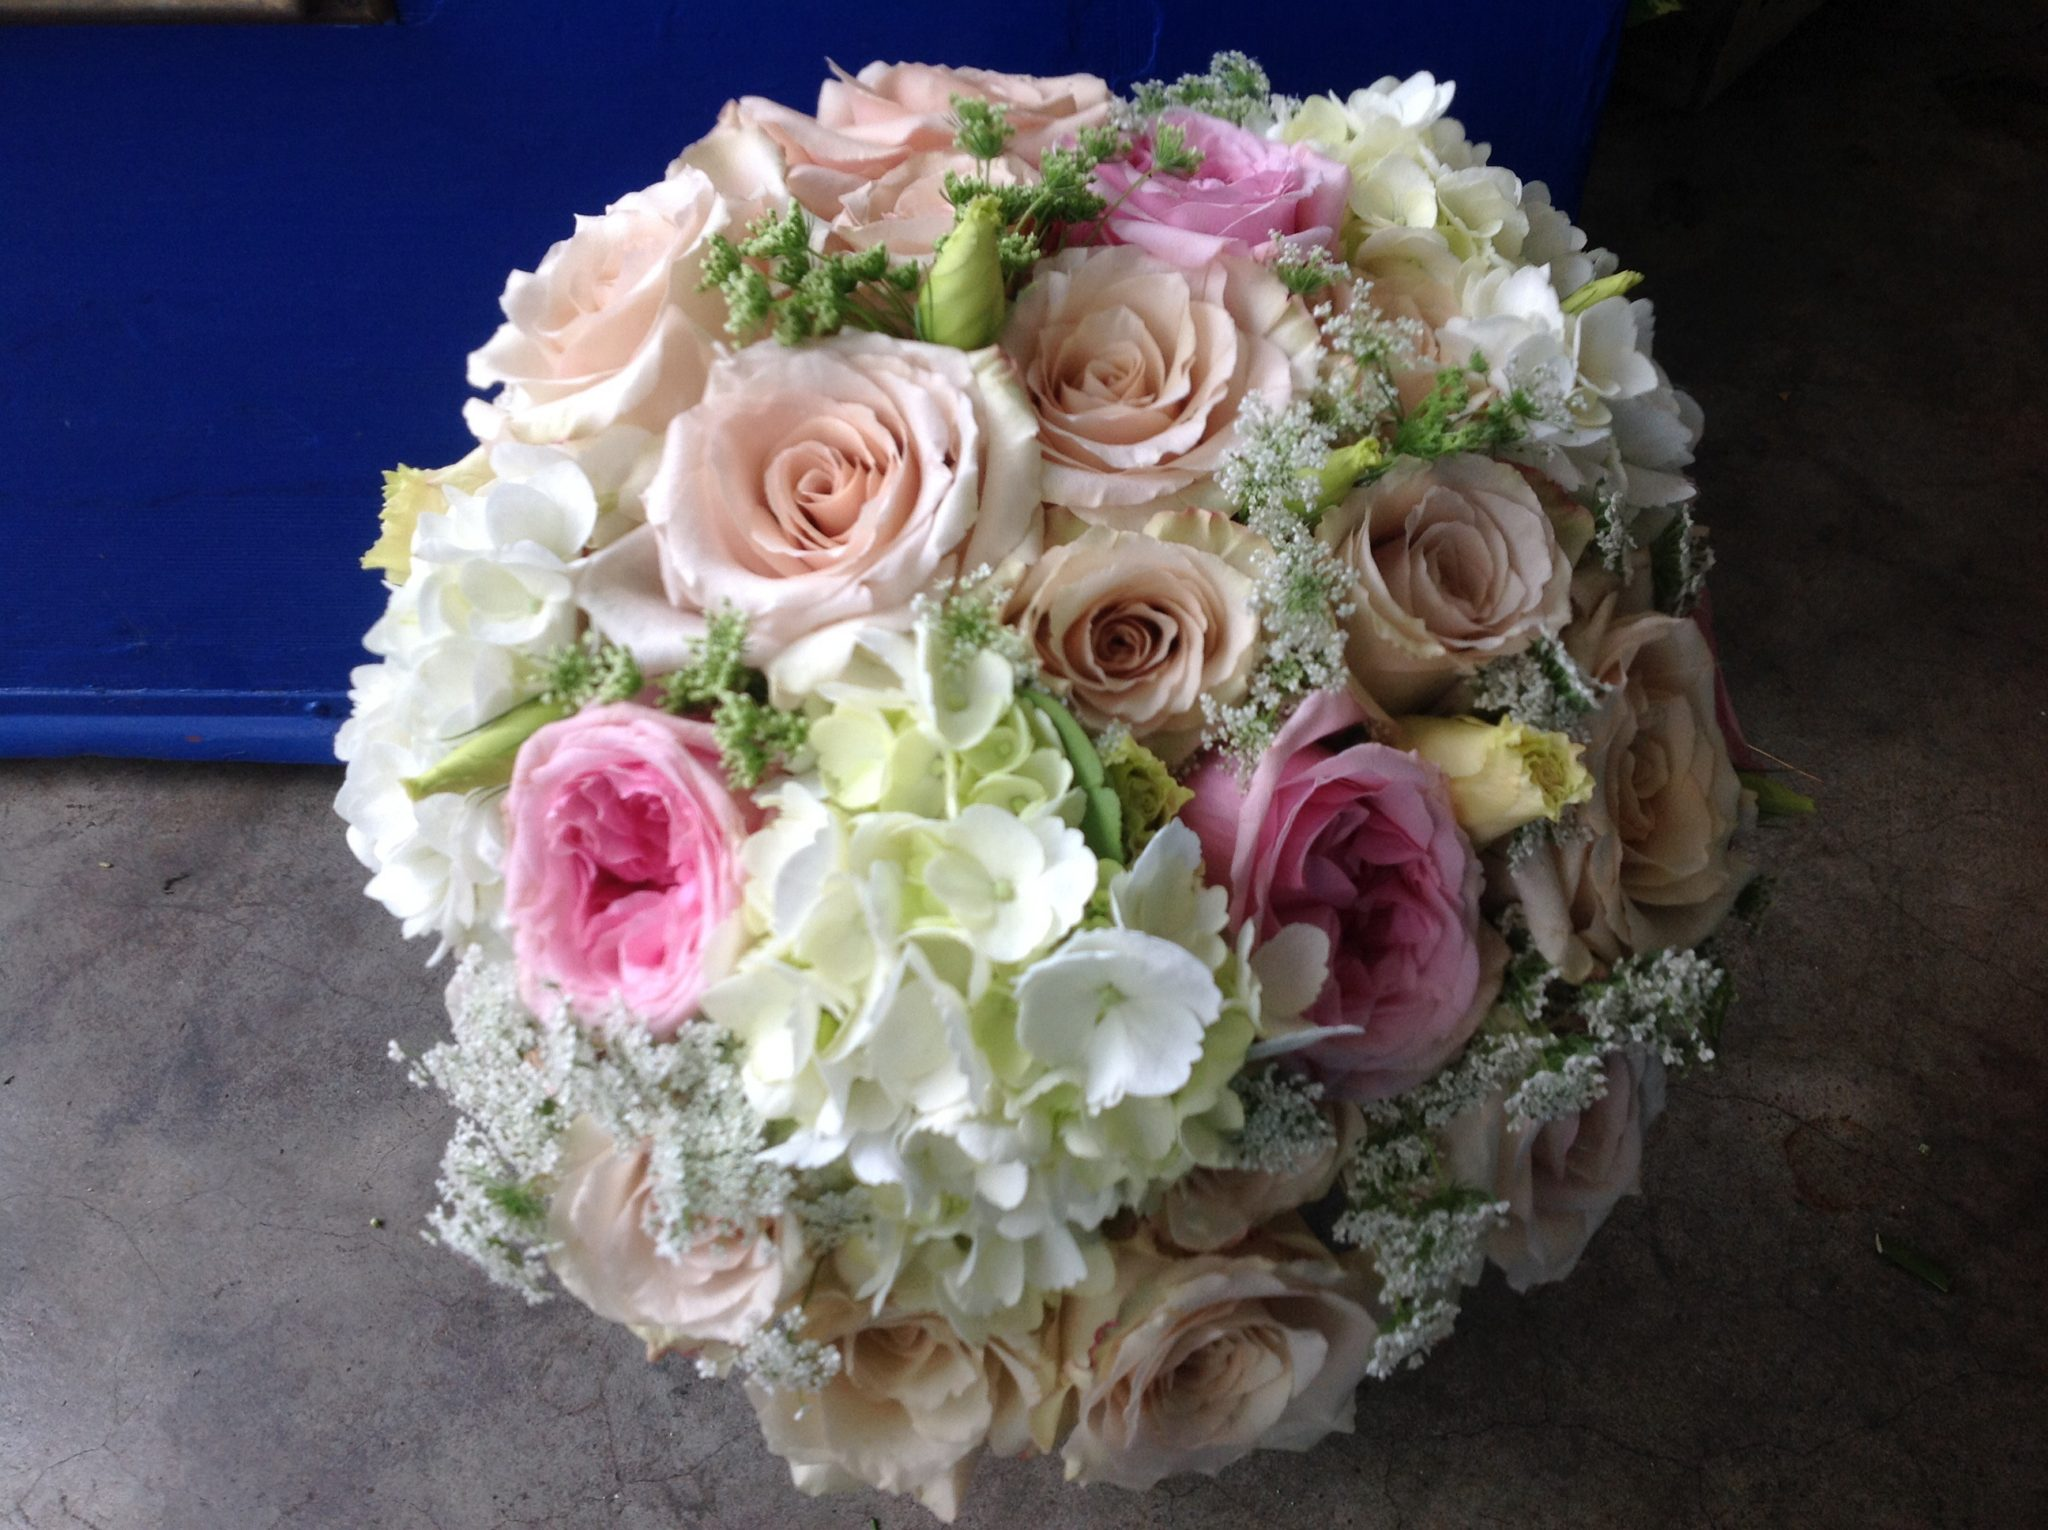 Classic Nosegay Style Bouquet made with Roses and Hydrangea.